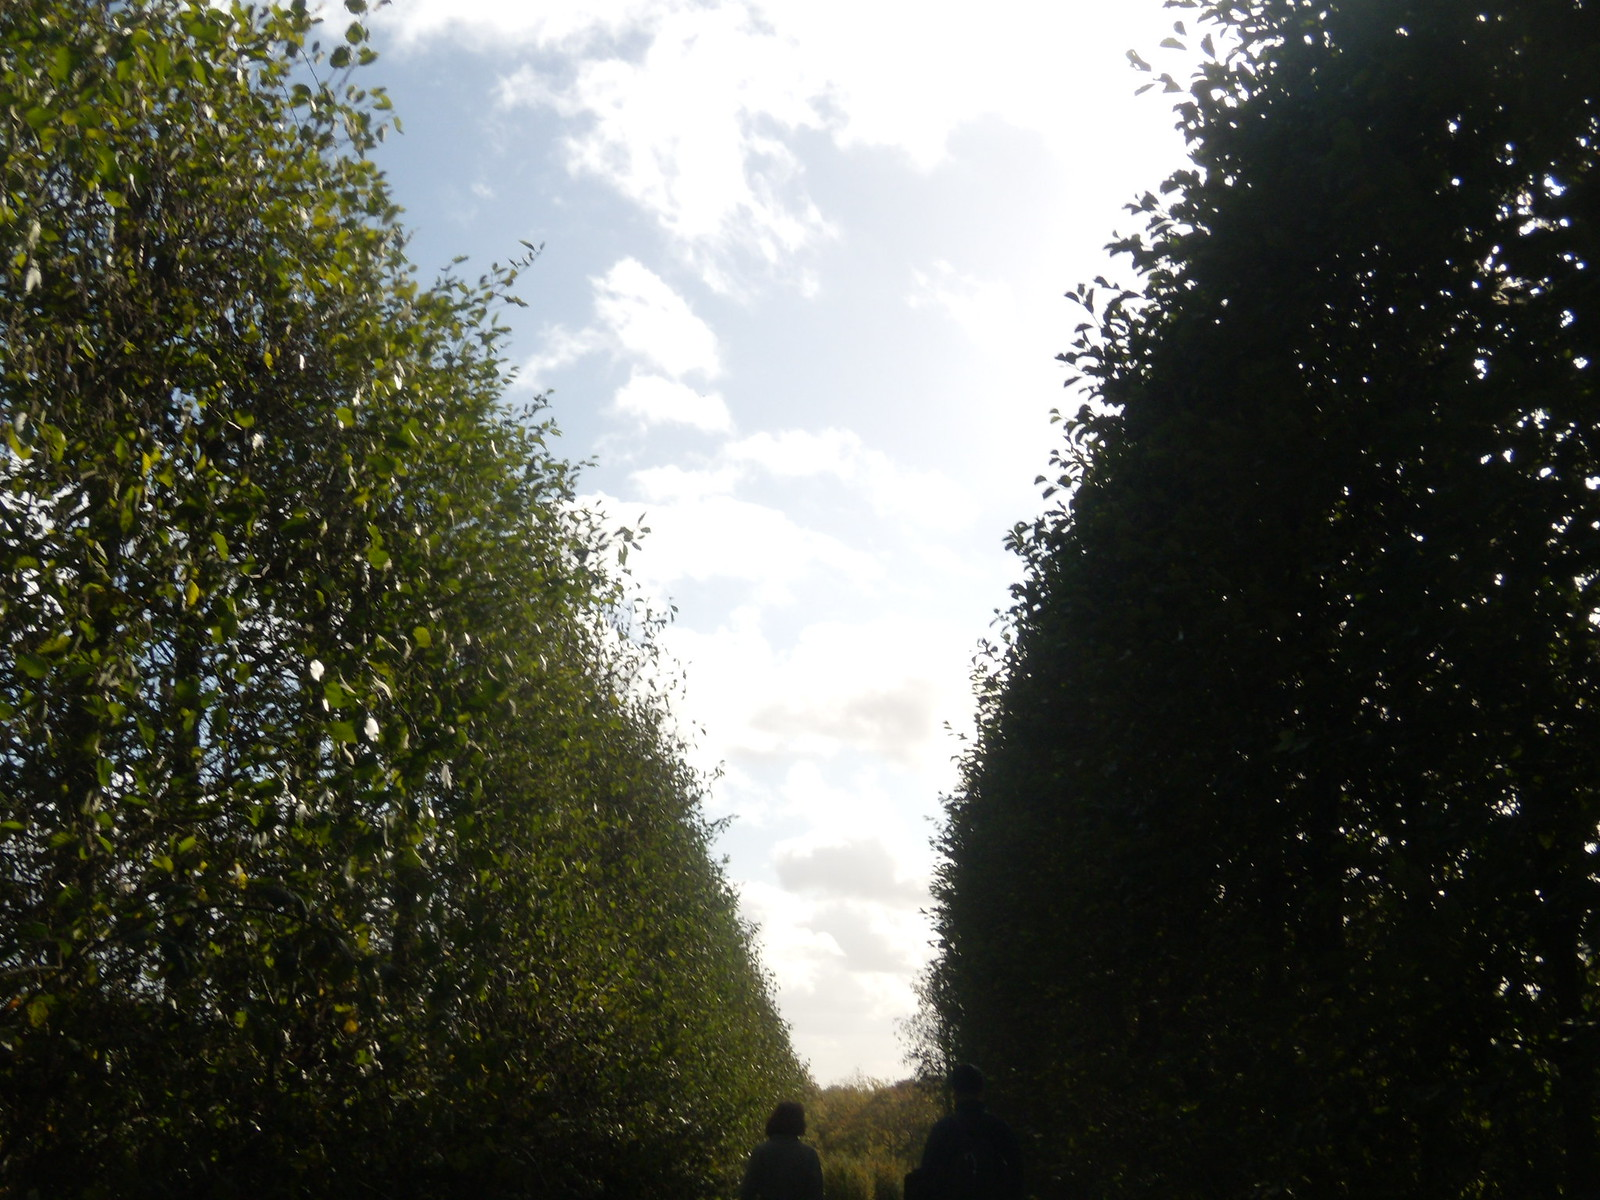 Through the orchard Sevenoaks Circular